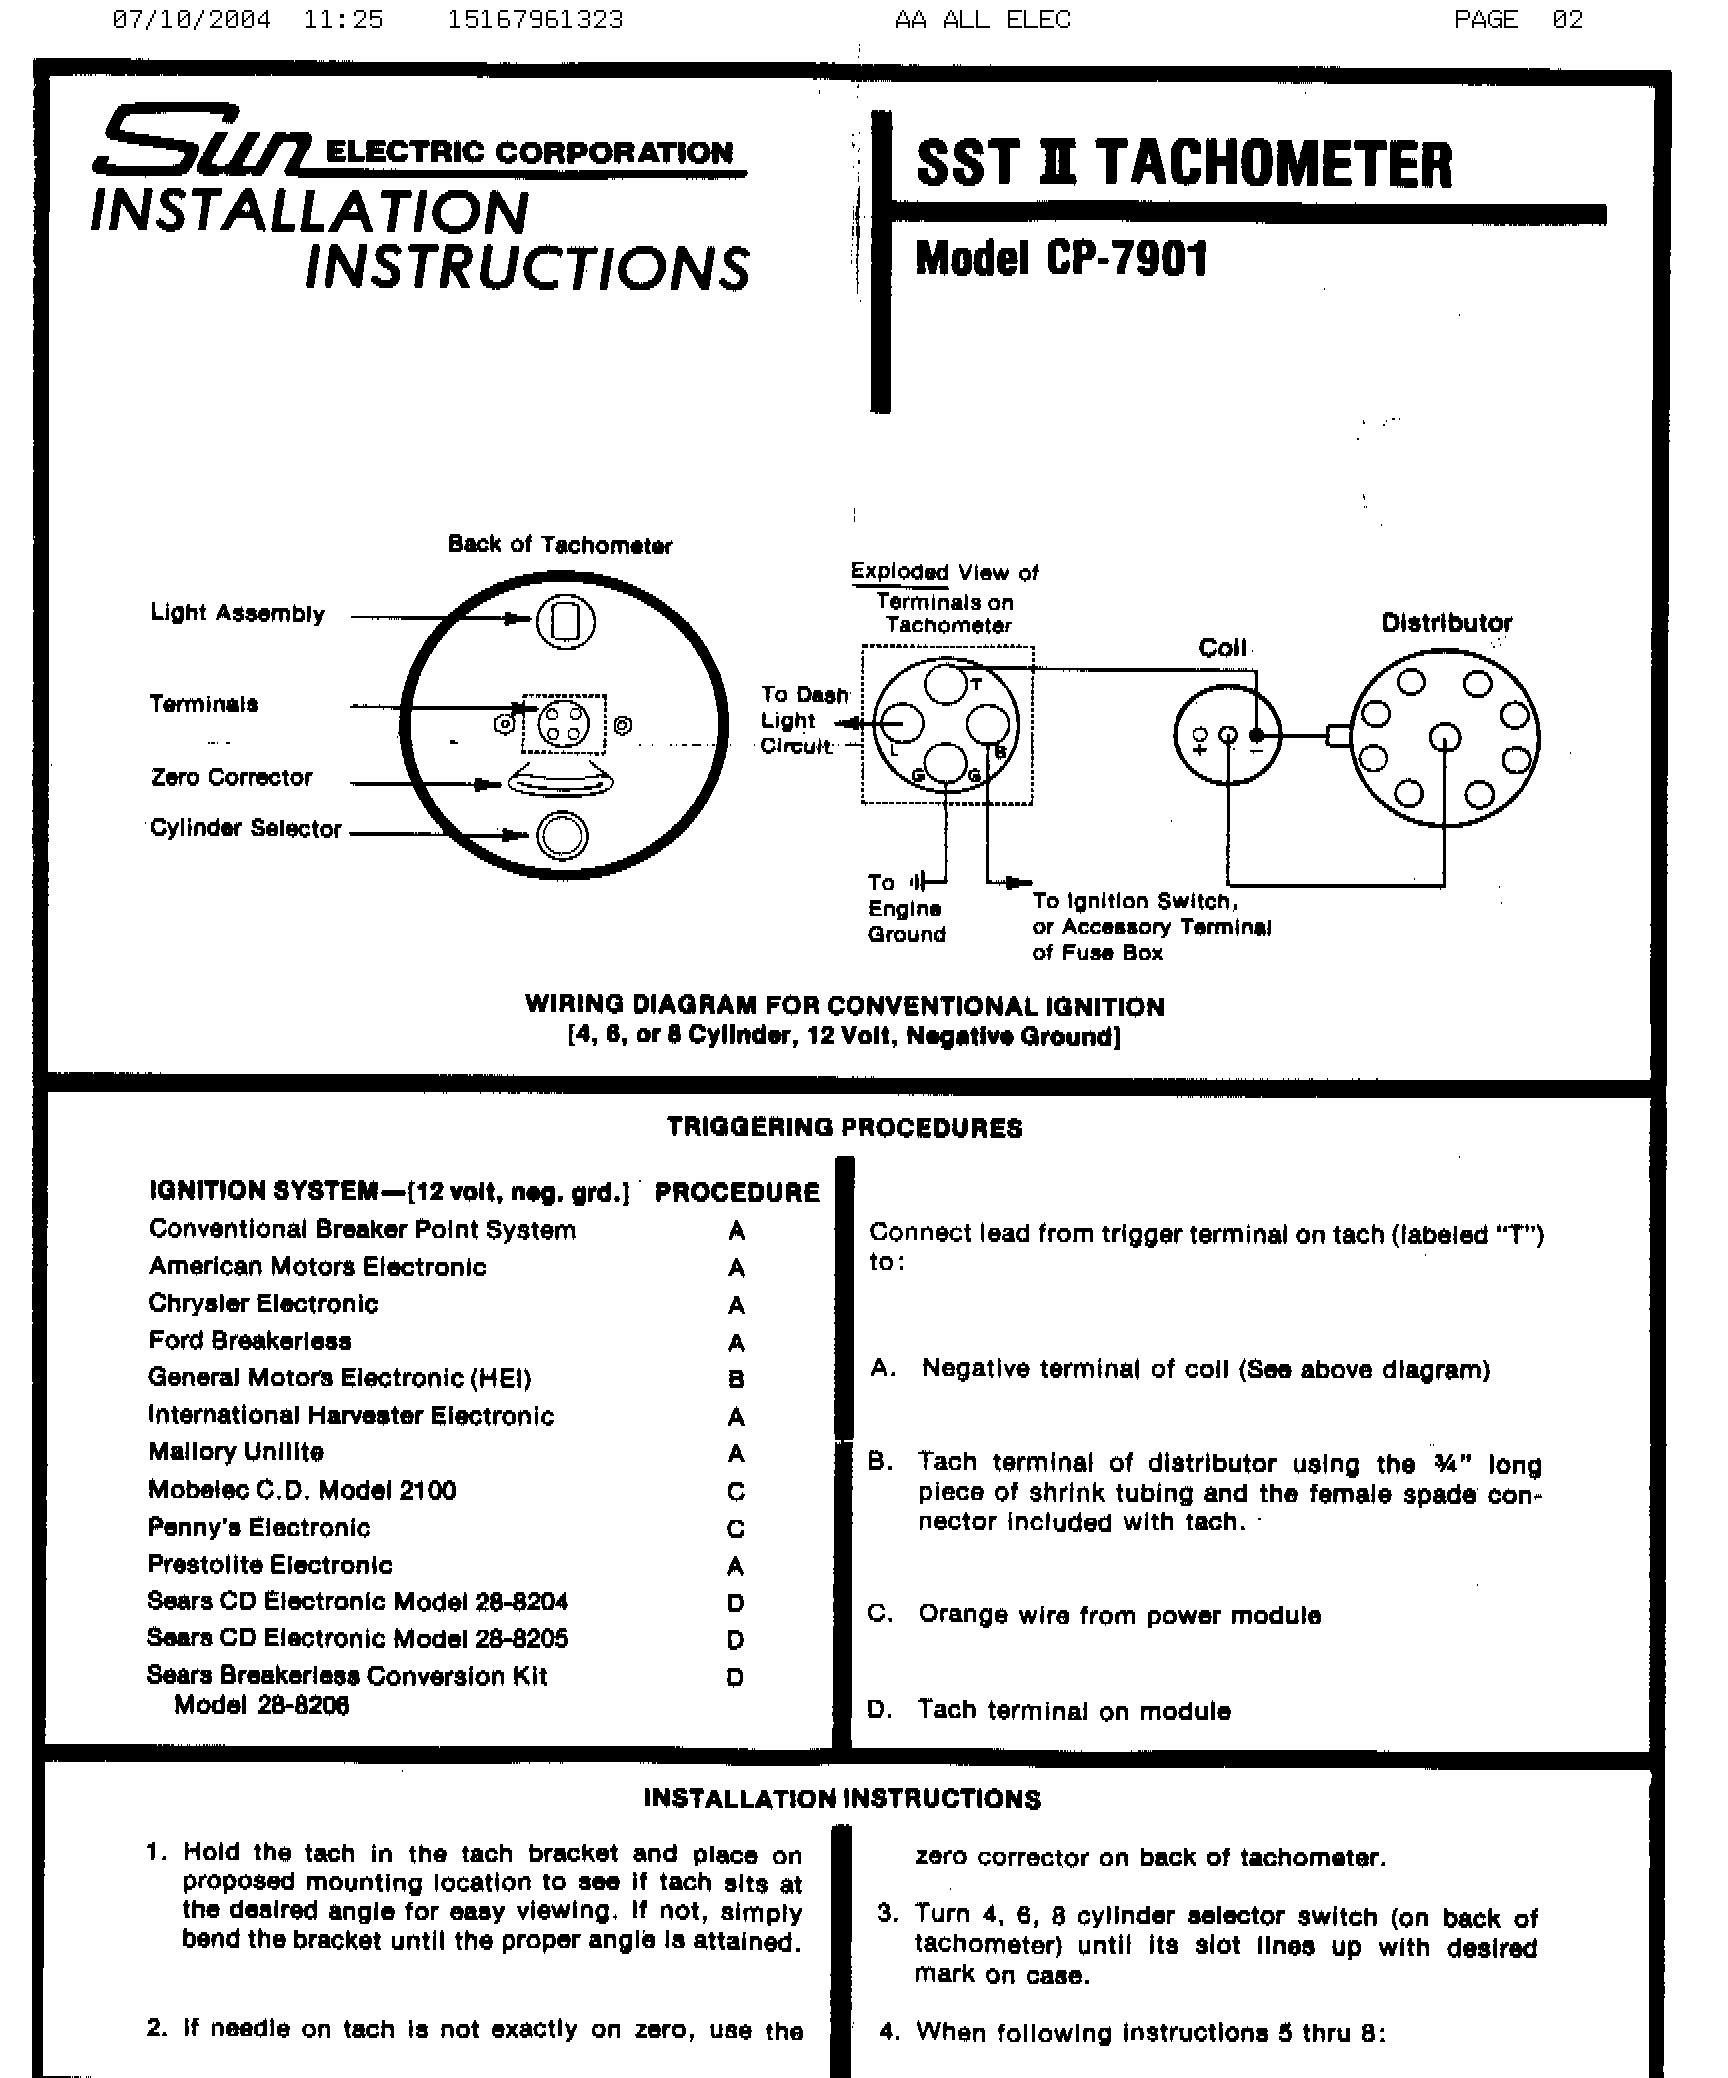 hight resolution of sunpro tach 2 wiring wiring diagram blog vintage sun tach wiring diagram sunpro tach 2 wiring